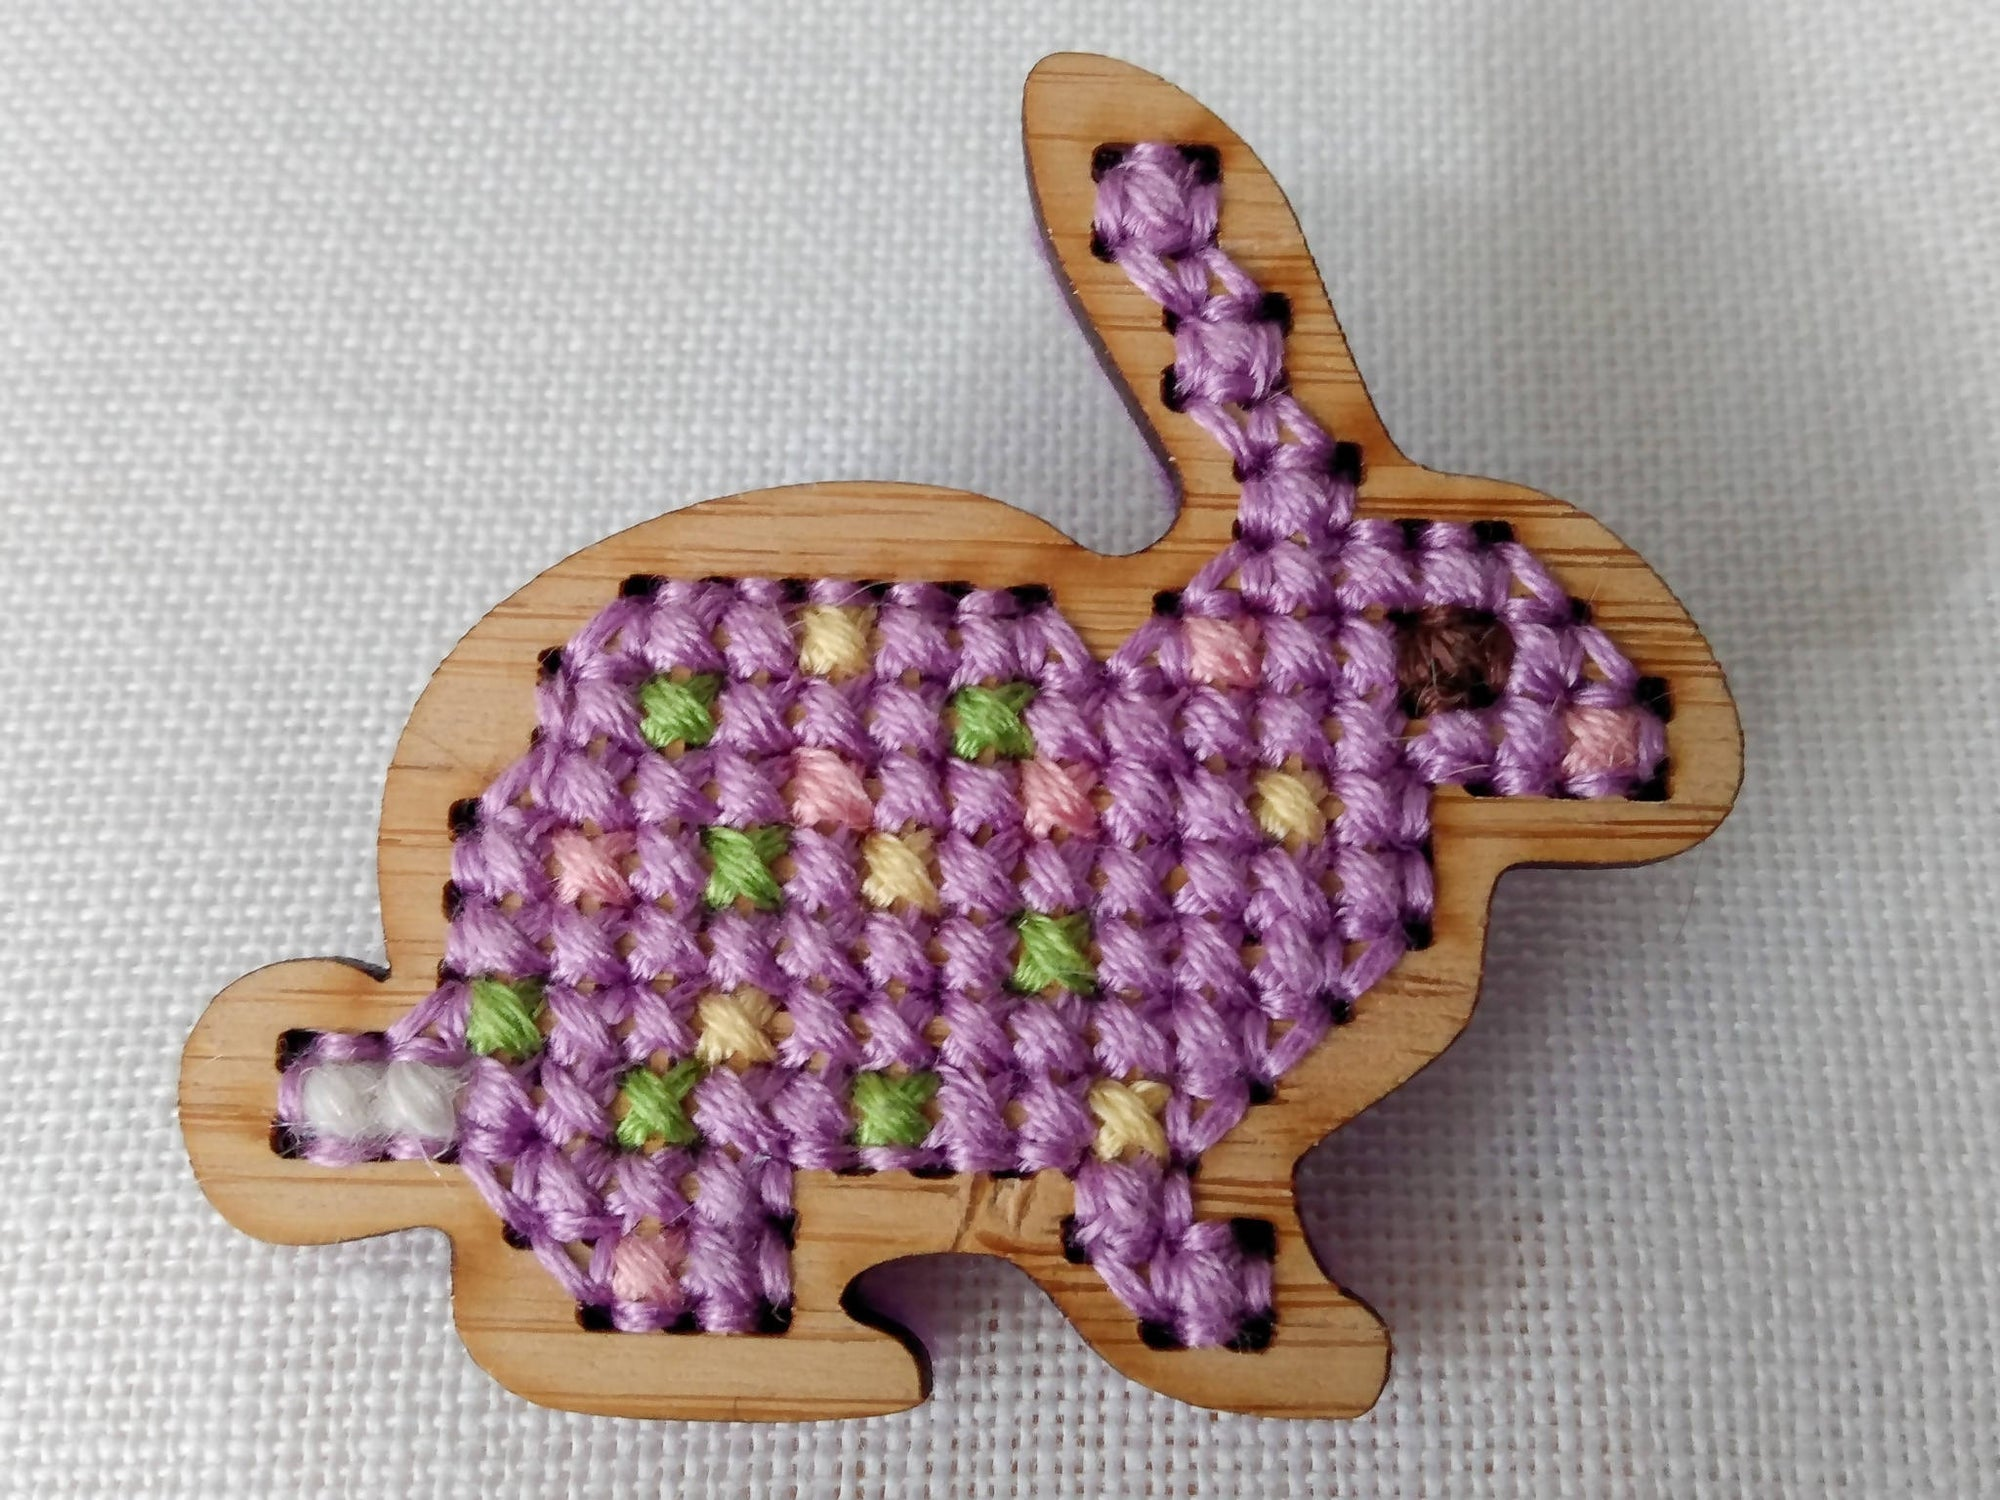 Bamboo Cross Stitched Lavender Fields Bunny Brooch